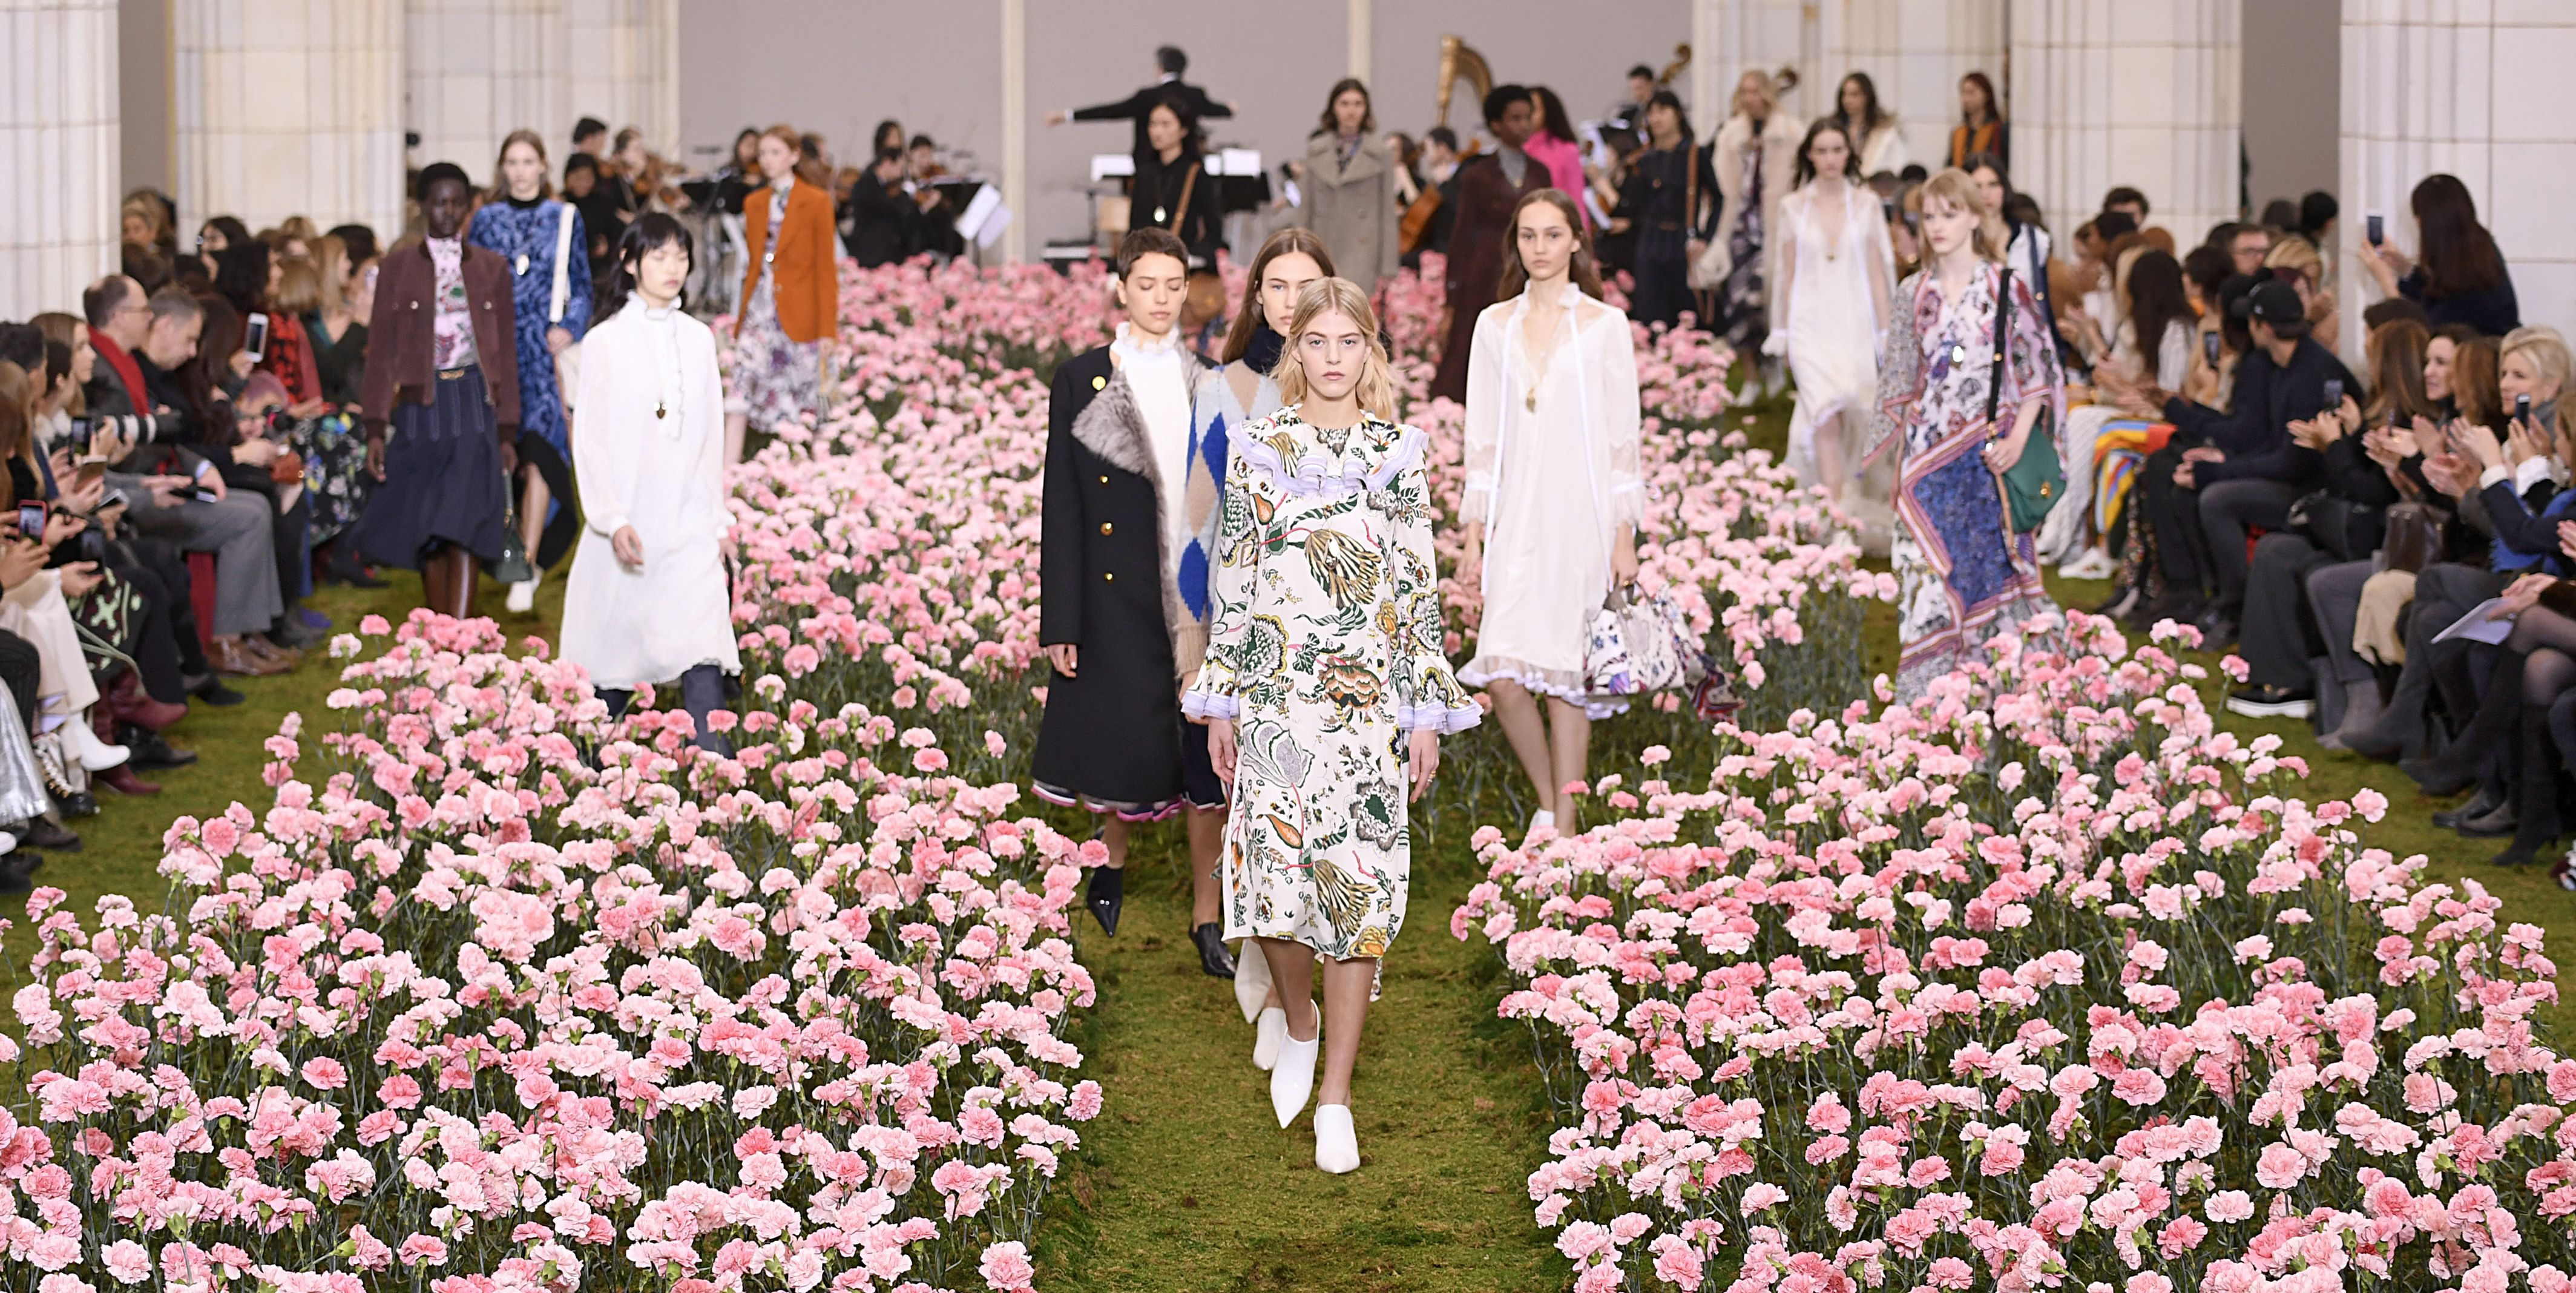 New York Fashion Week Tory Burch Fall Winter 2018-19 Collection